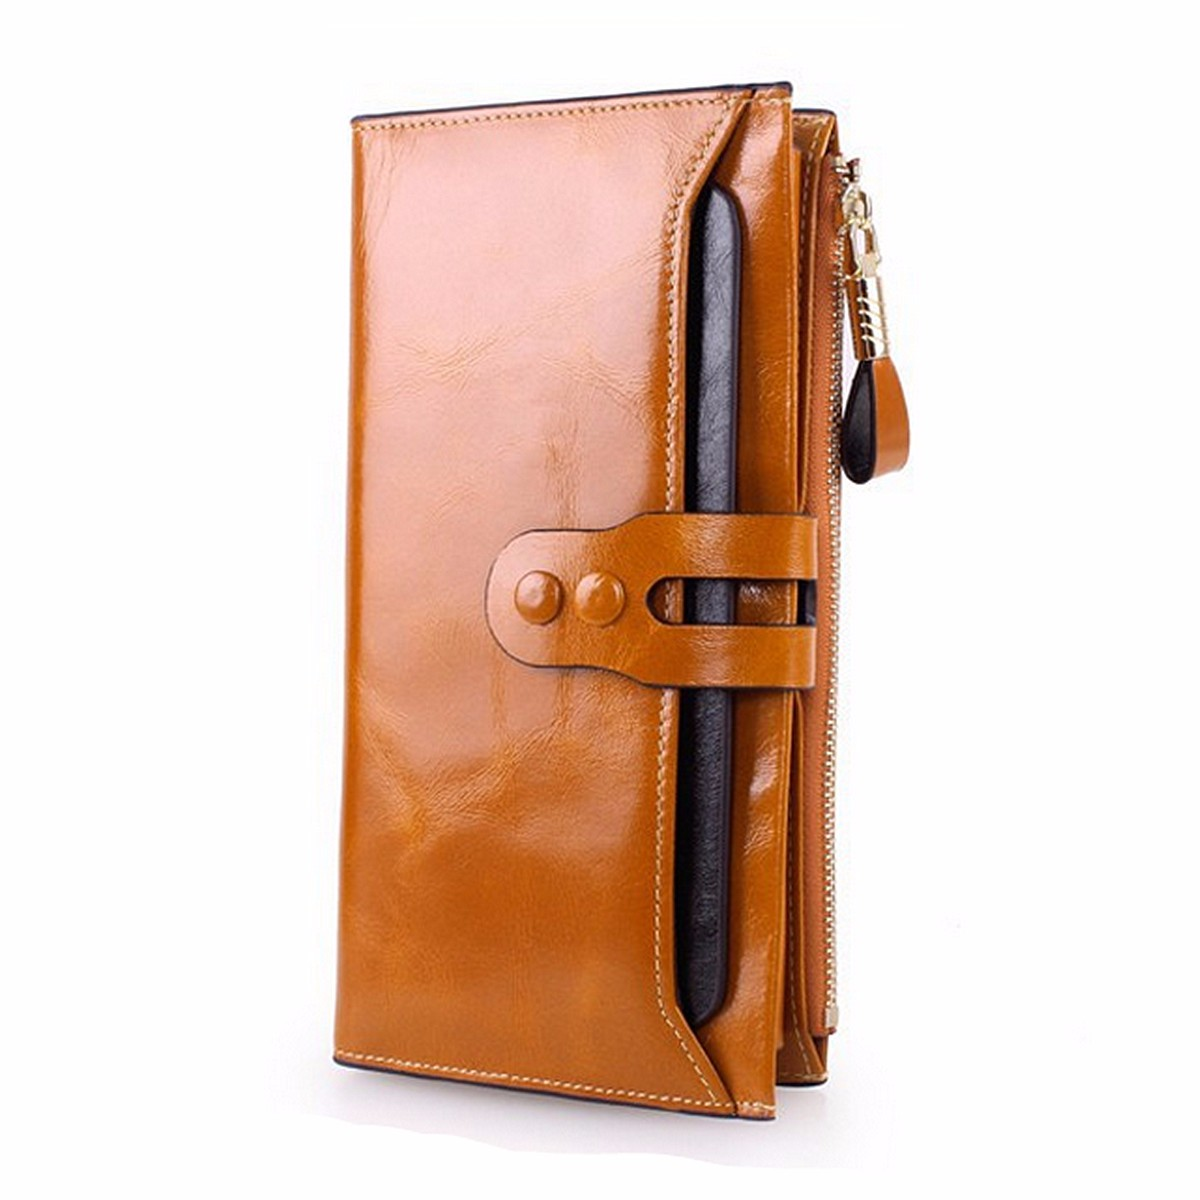 feminina carteiras de couro original Wallet Estilo 2 : Cowhide Leather Women Wallets Zipper Coin Purses